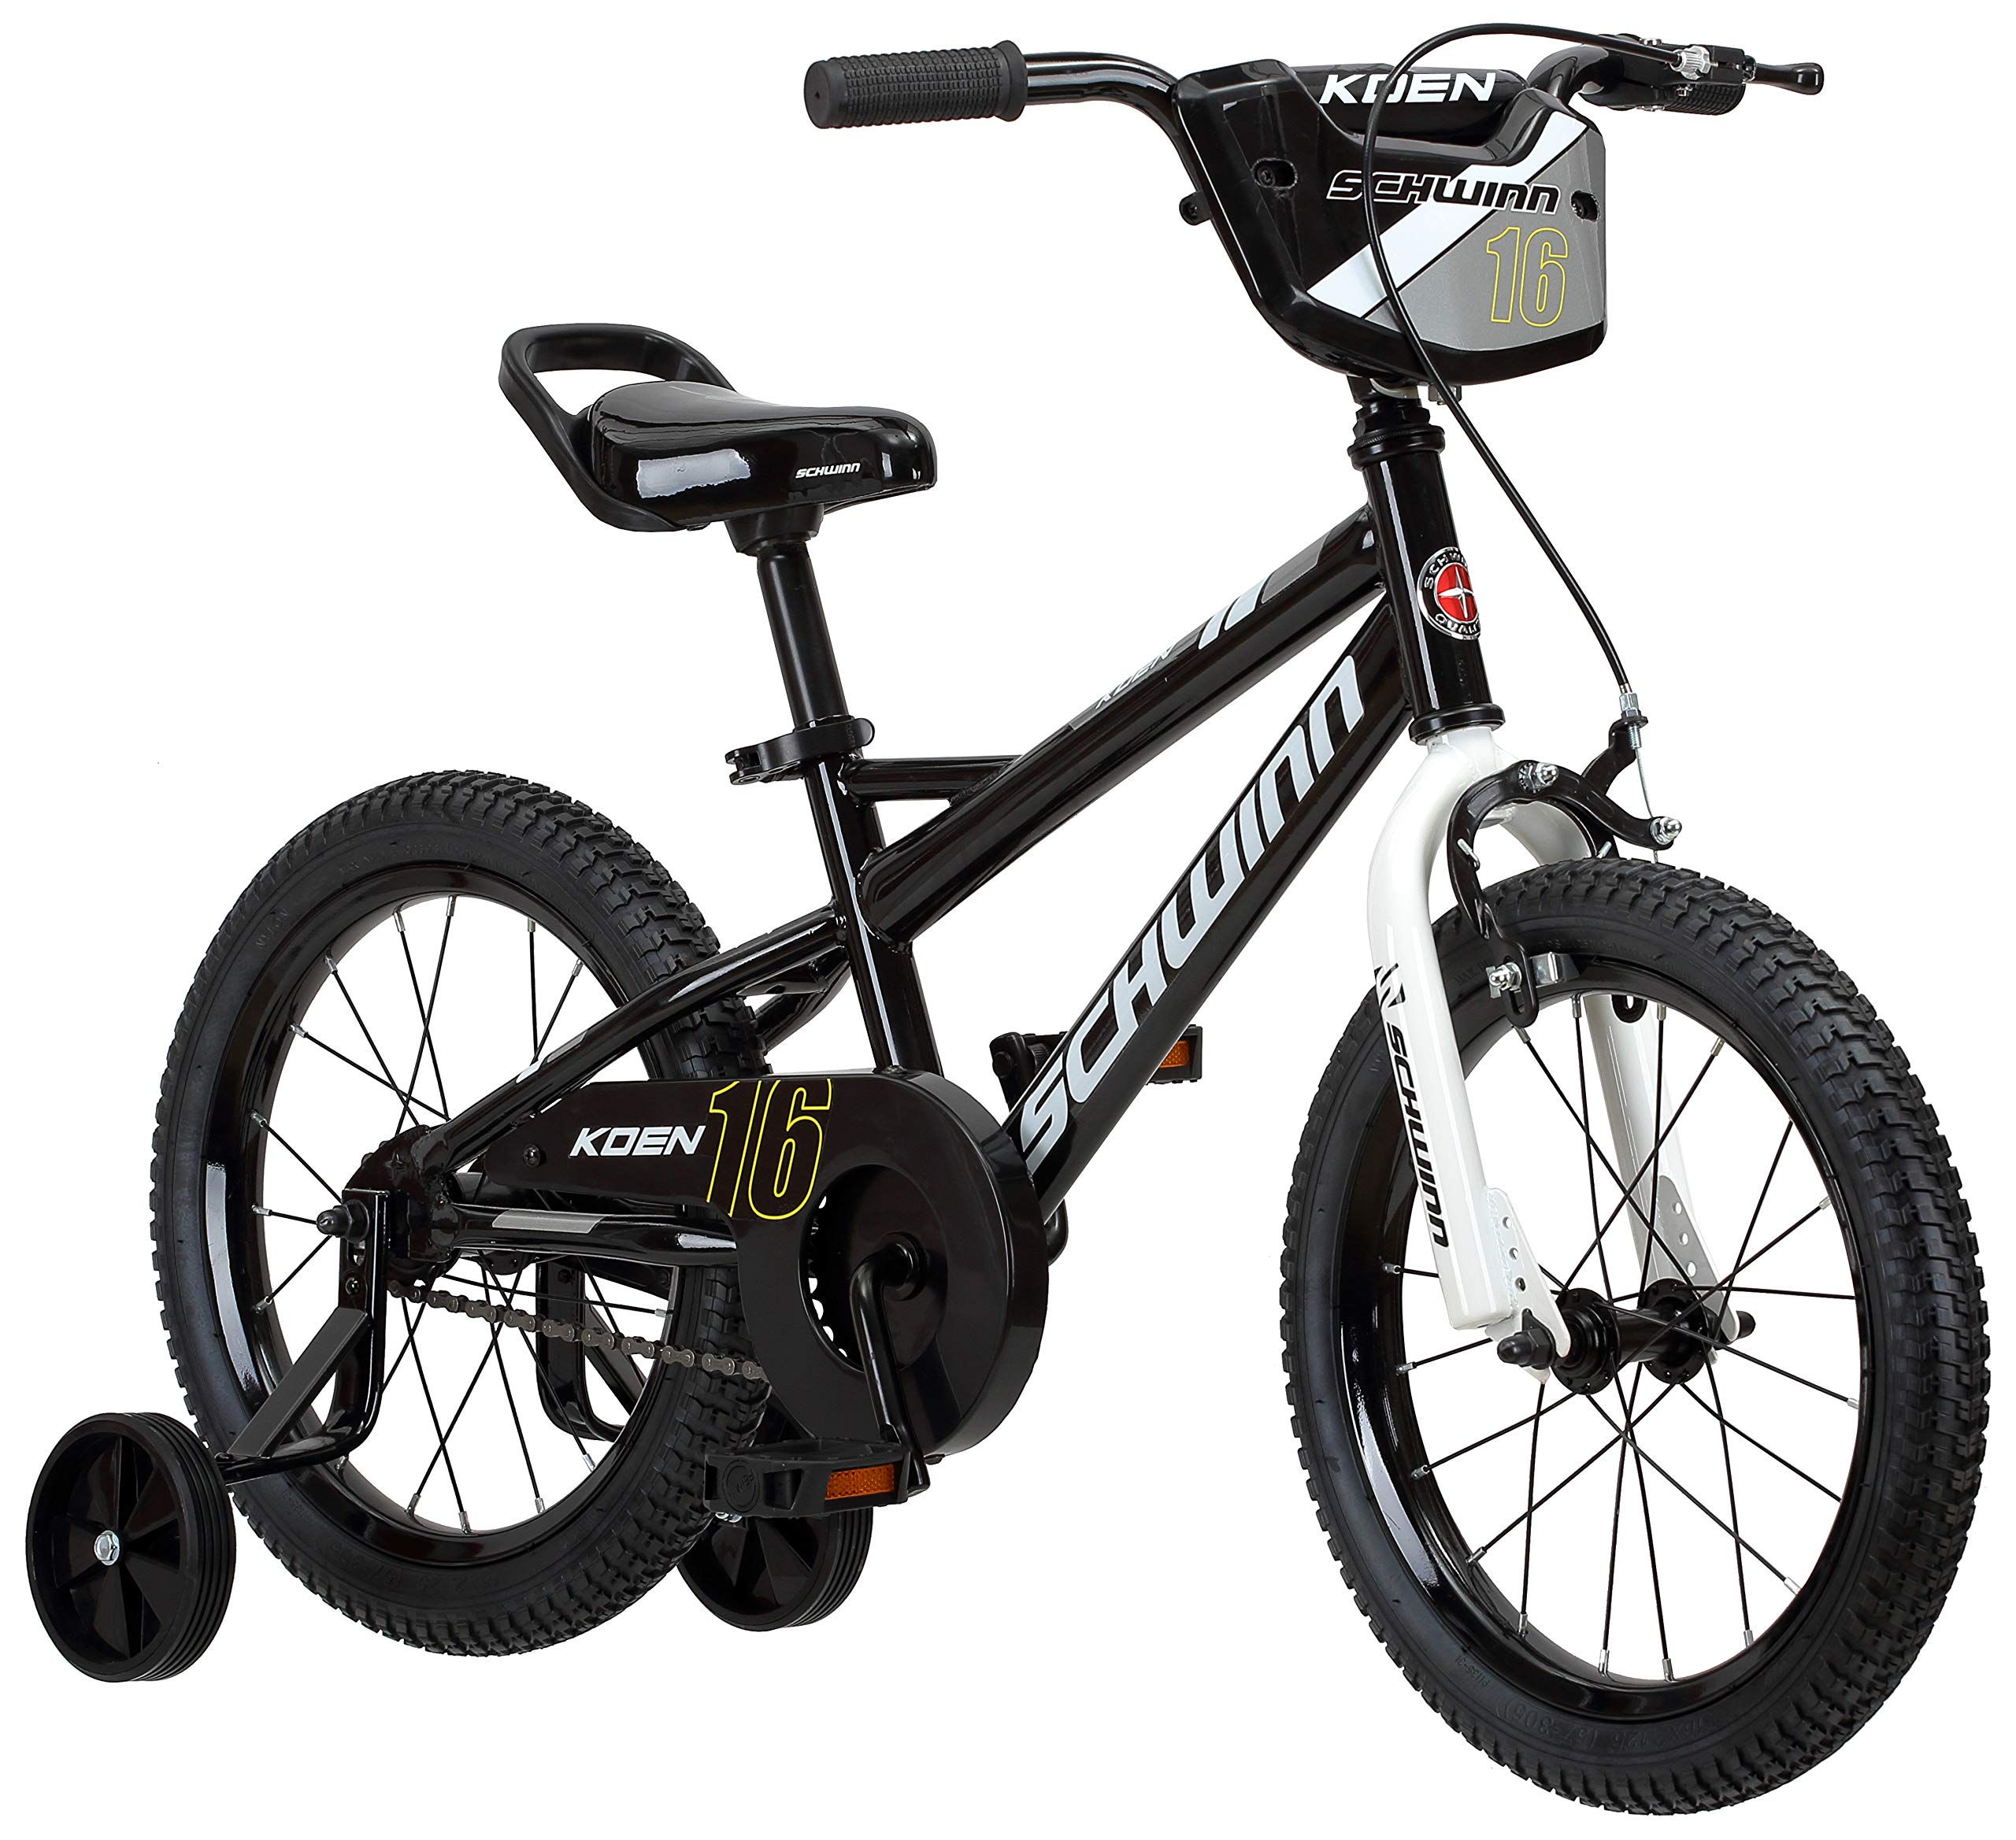 Schwinn Koen Boy's Bike with SmartStart, 16'' Wheels, Black